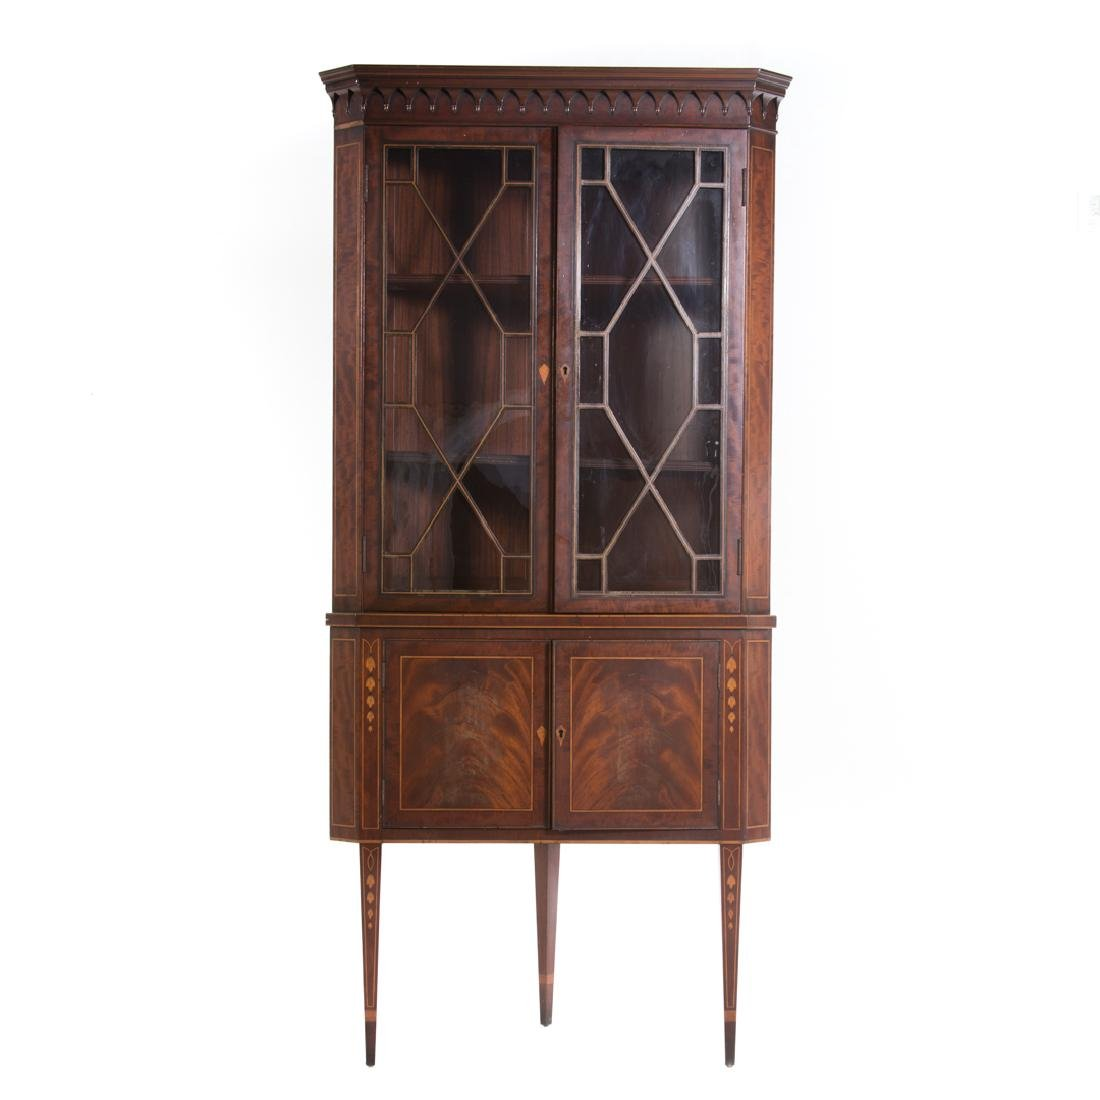 Federal style inlaid mahogany corner cabinet